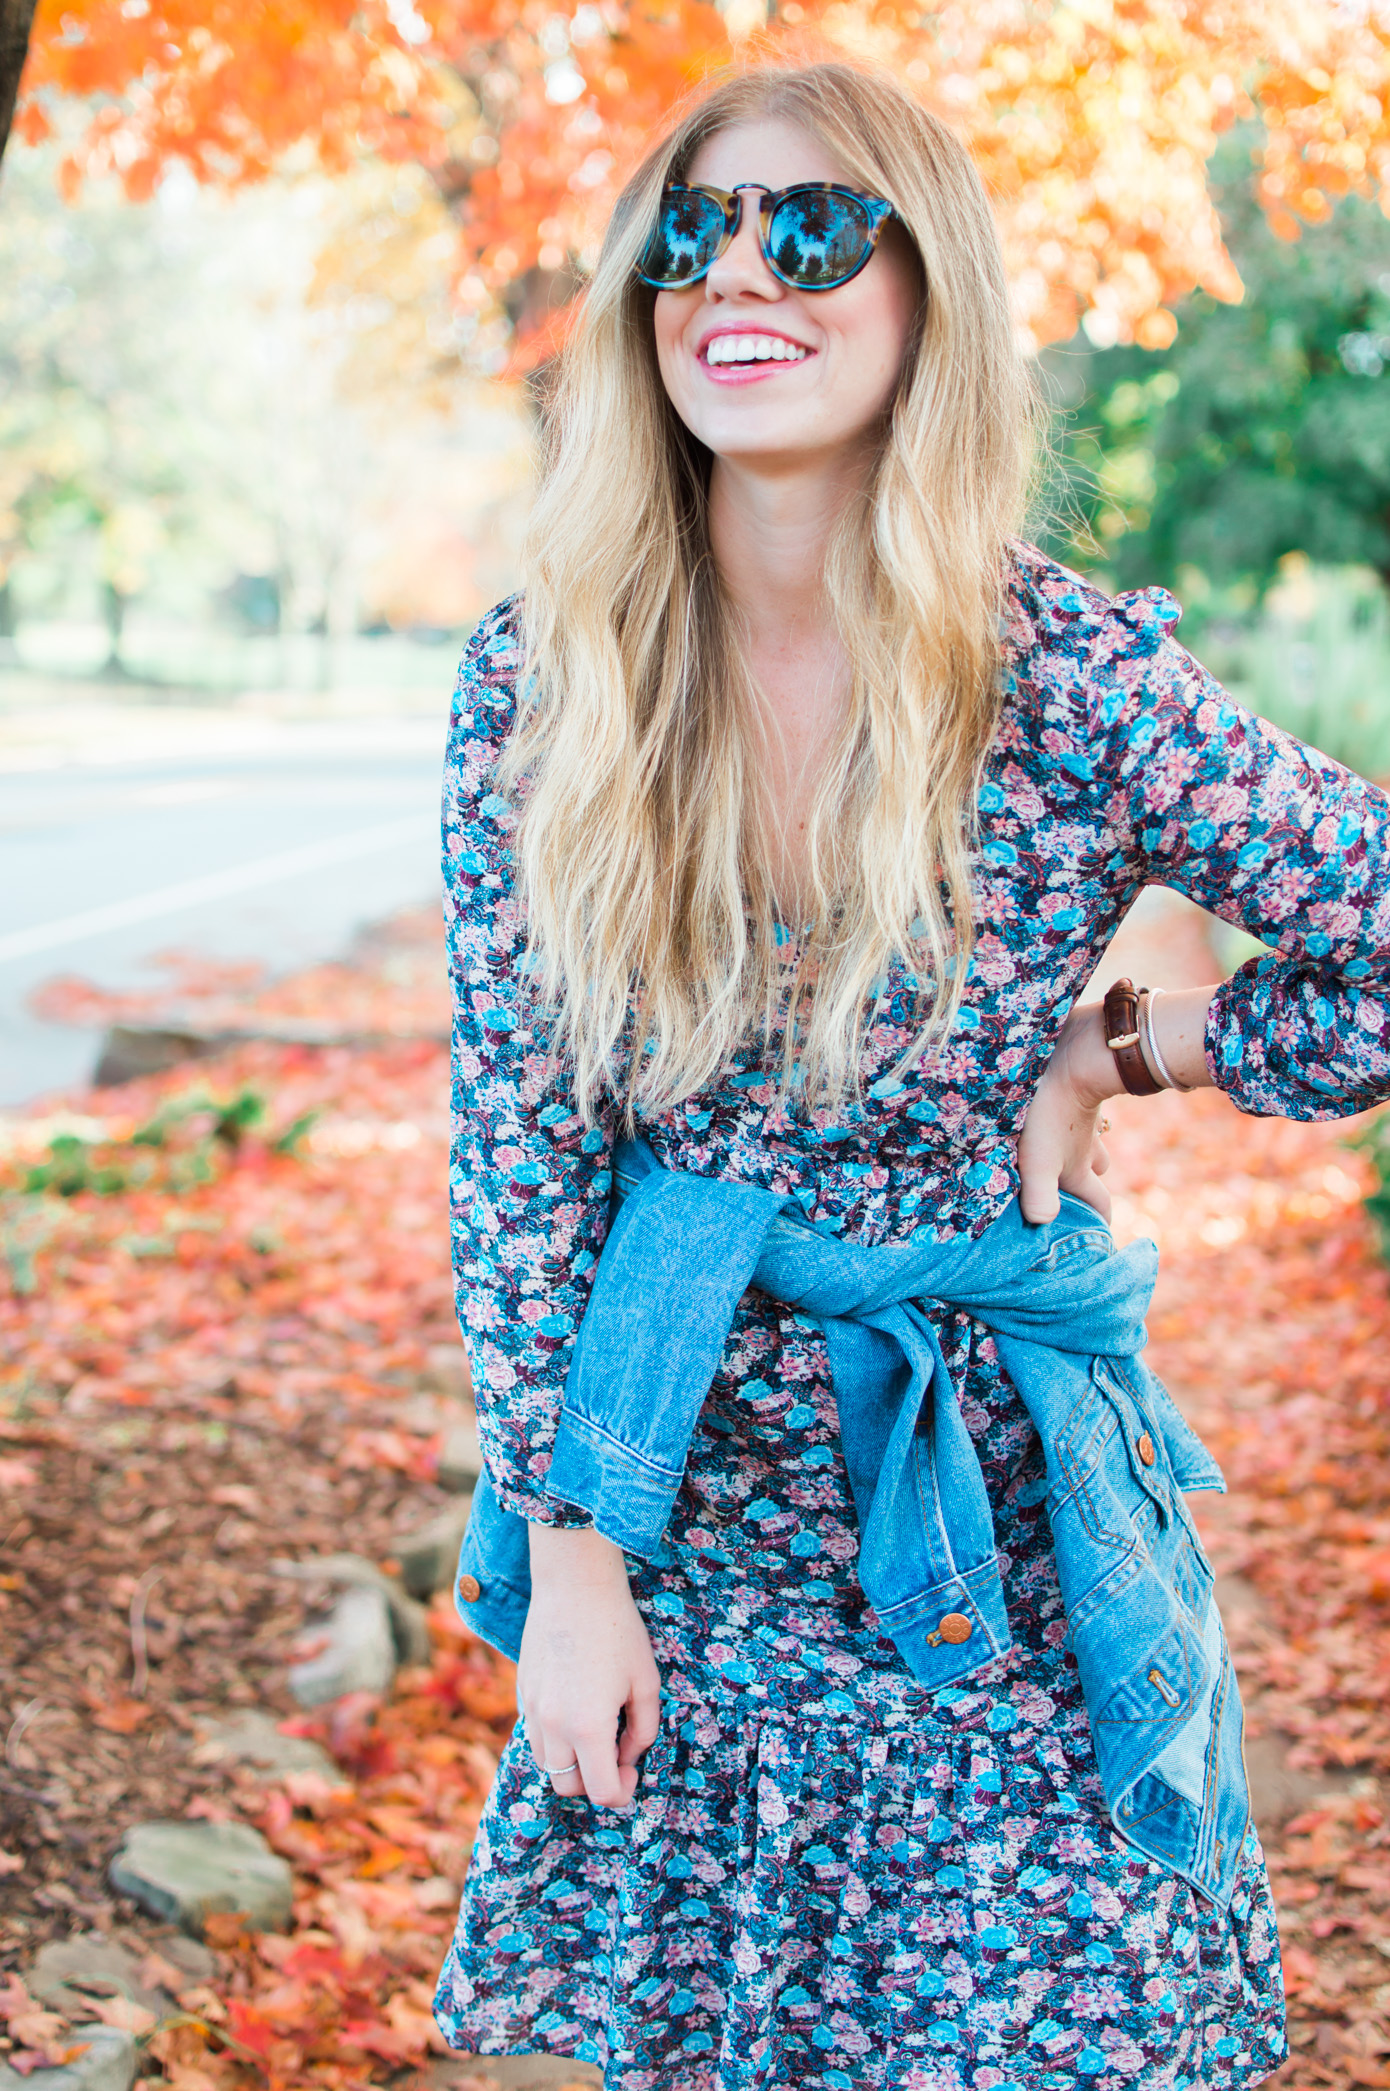 J.Crew Ruffle Hem Dress in Floral Paisley | Fall Dresses | Louella Reese Life & Style Blog